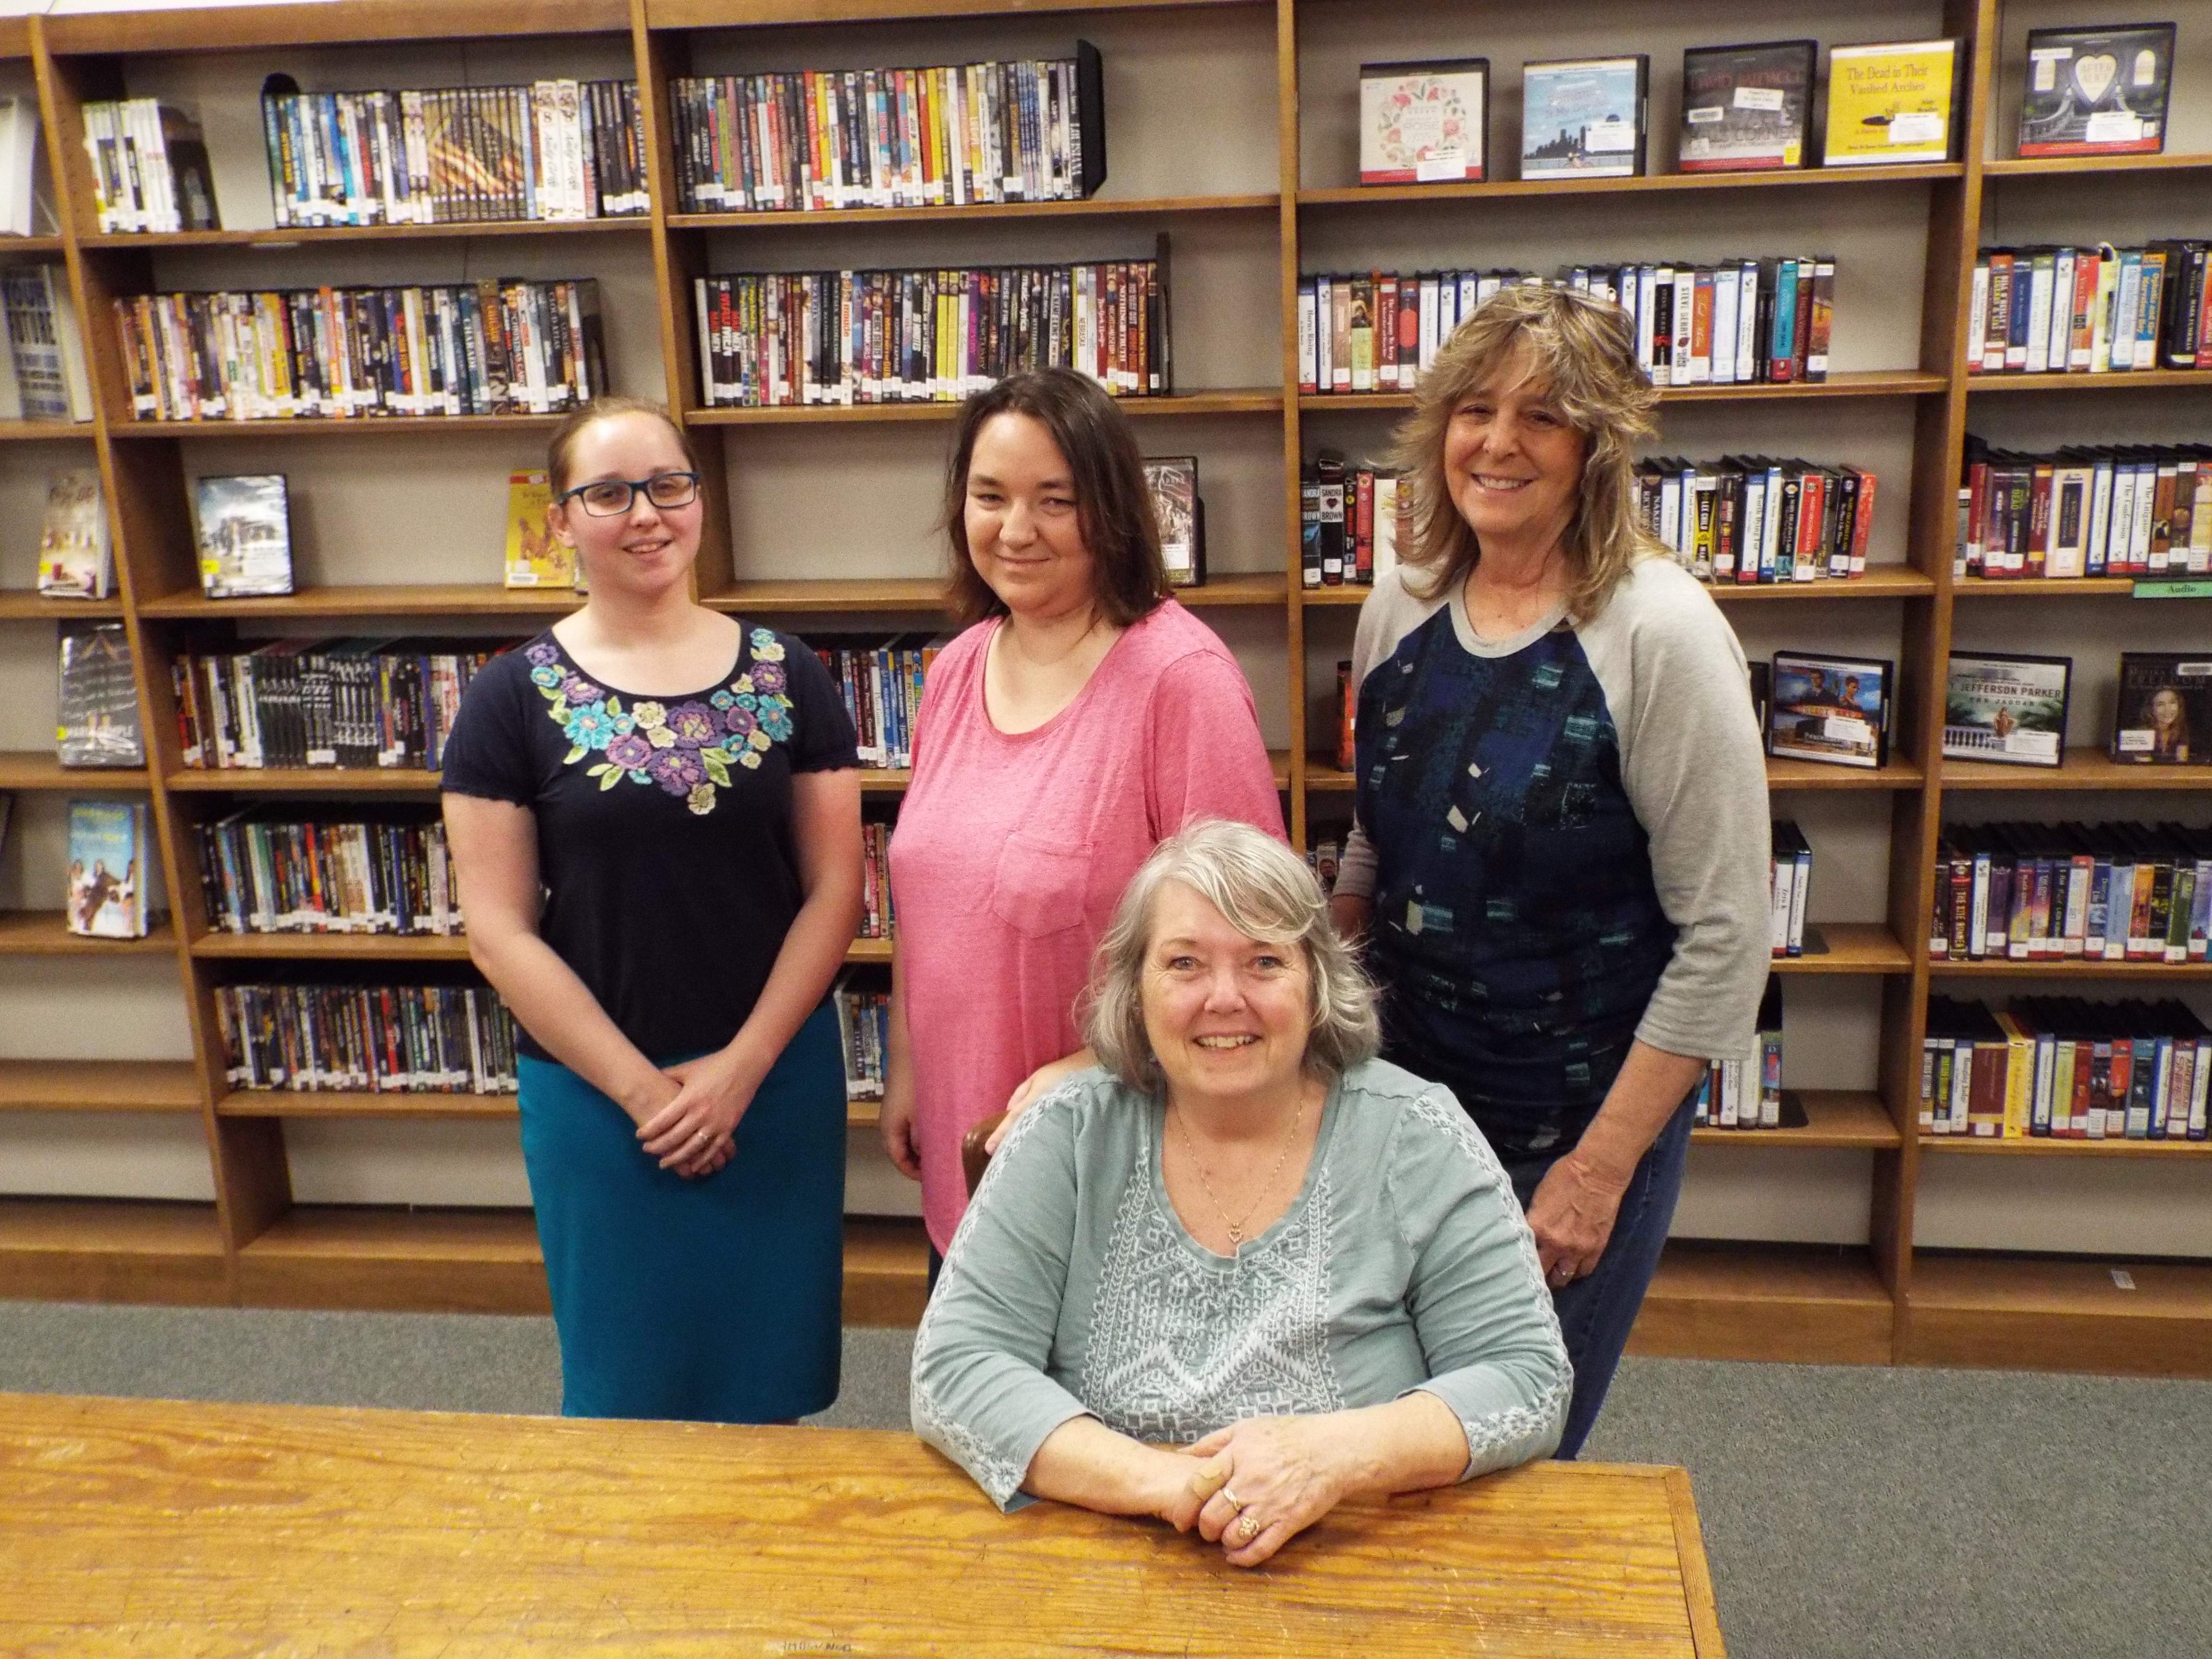 Several of the photographers whose work now hangs in the Du Quoin Public Library Gallery gather Monday evening for an artists' reception at the library. Standing from left are Brittany Elswick, Becky Hagerling and Jean Bullock. Pat Purnell is seated.